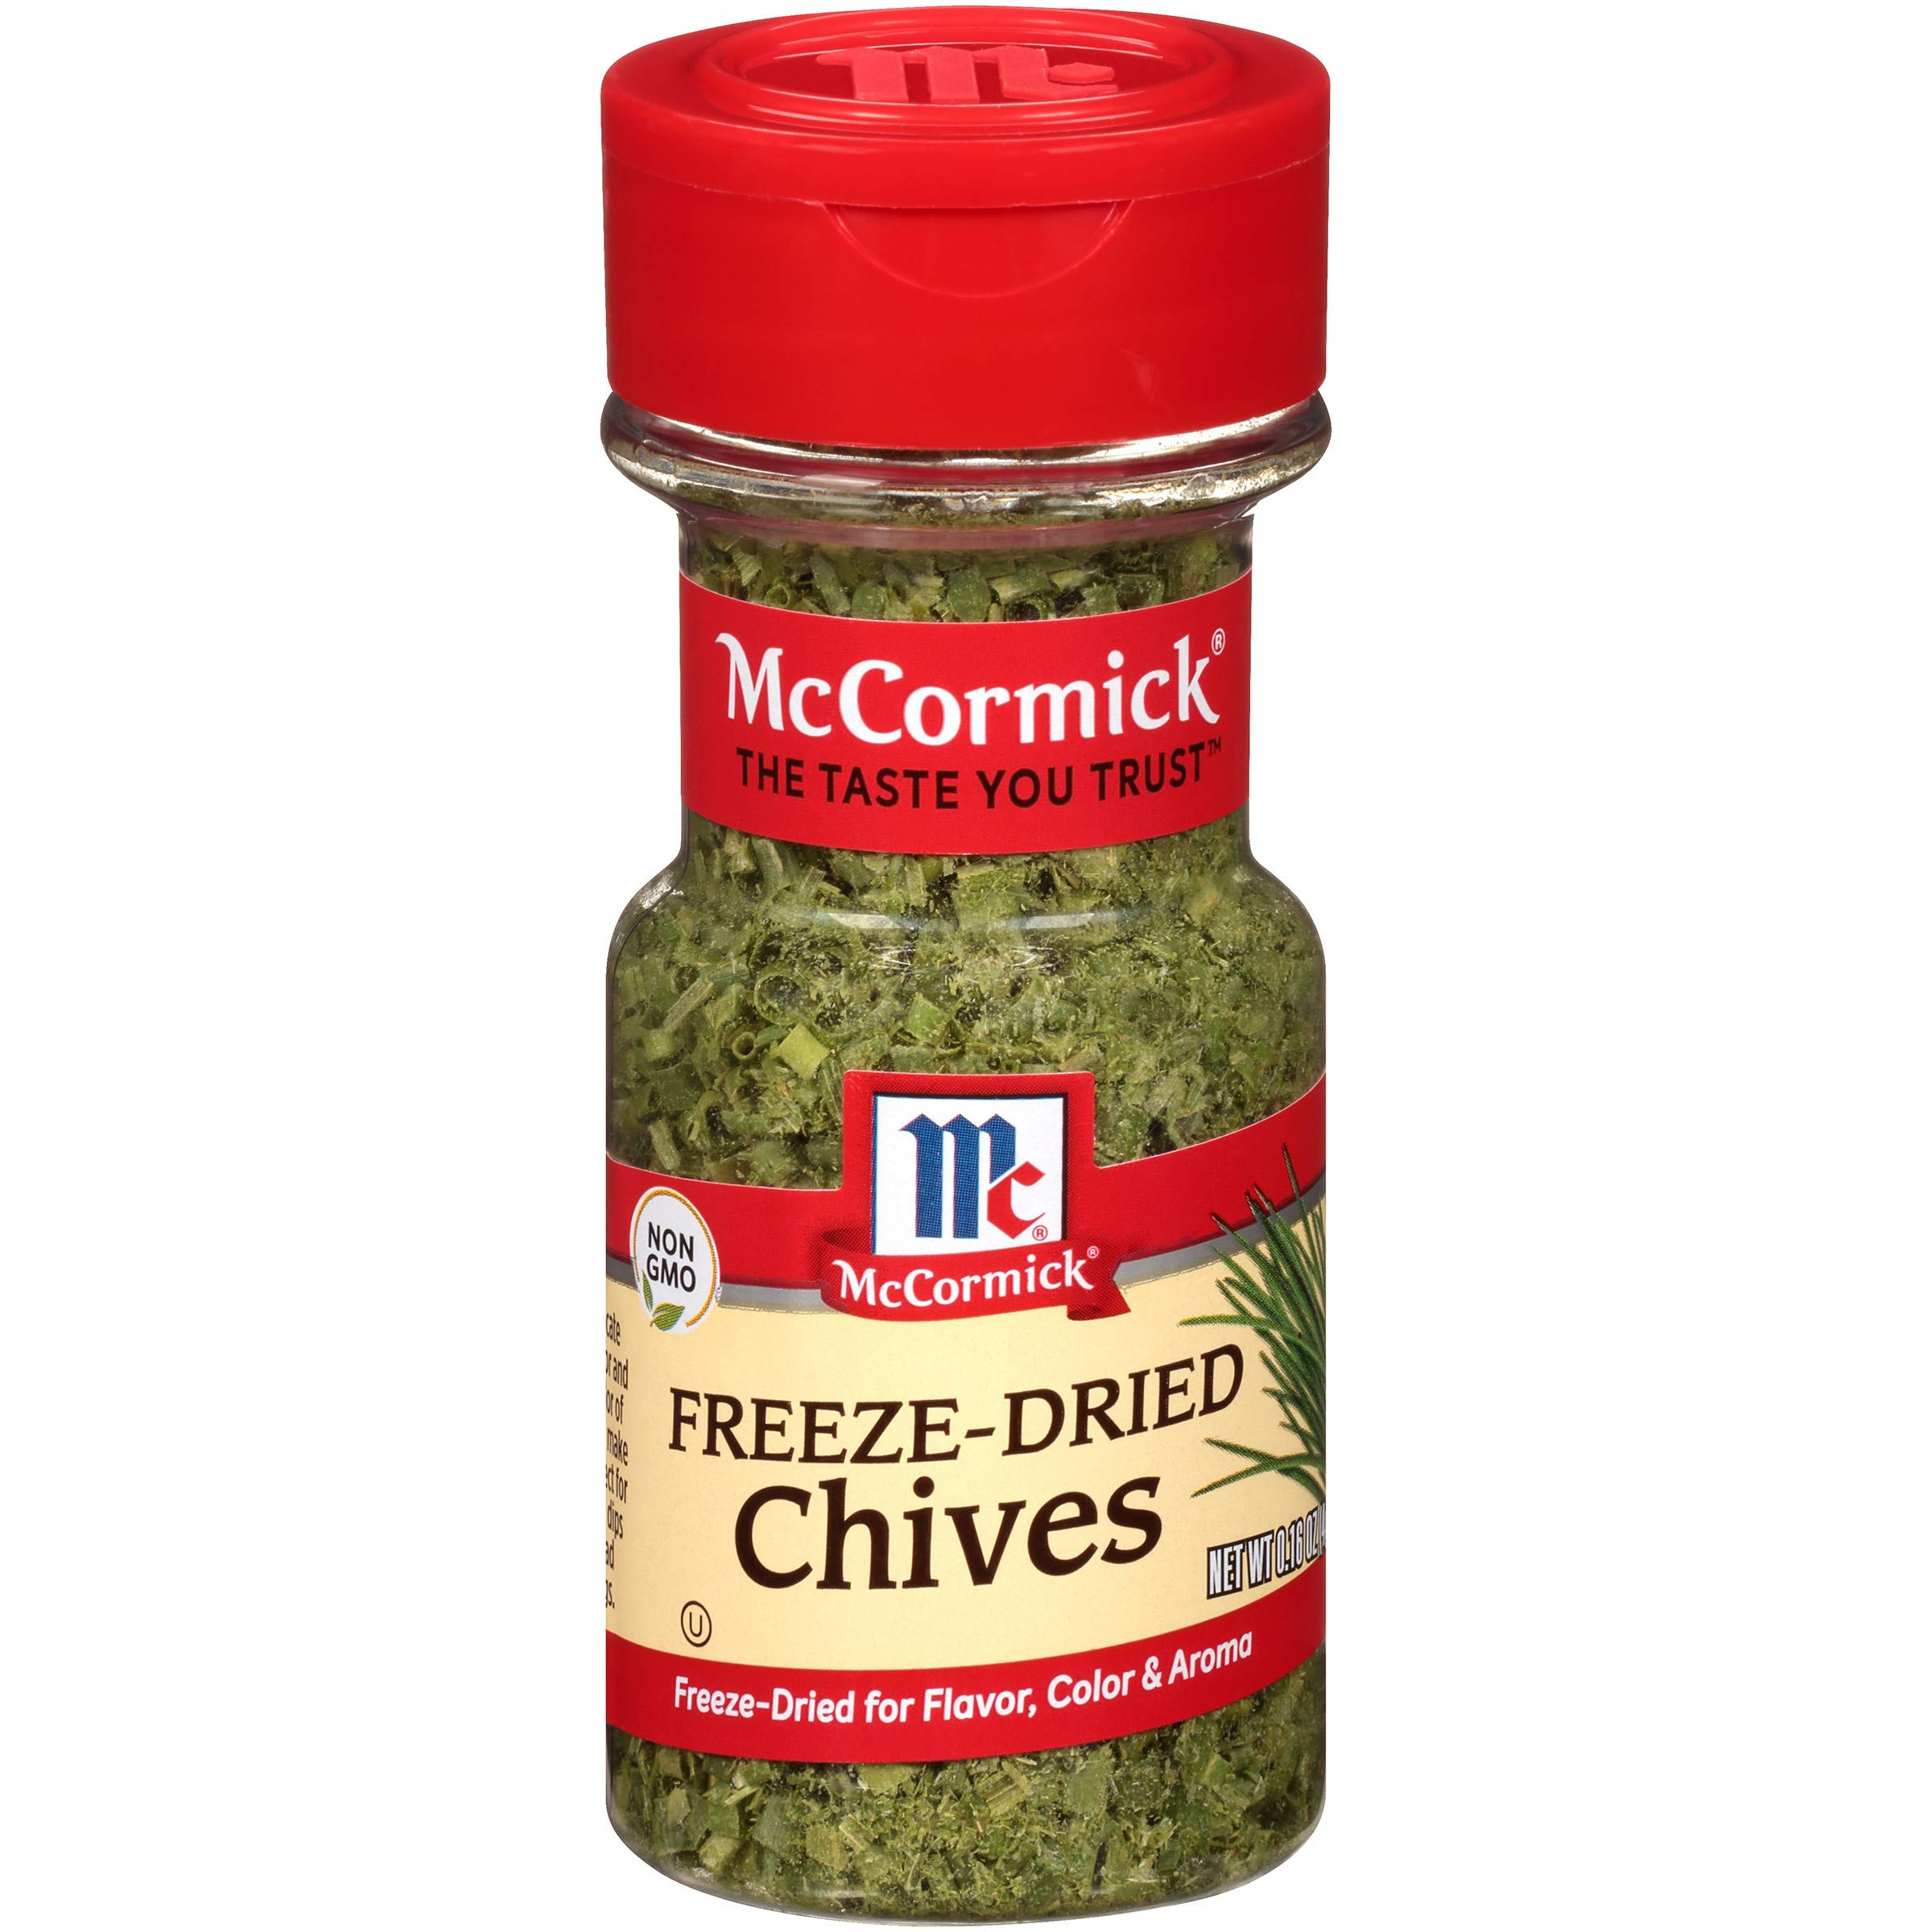 McCormick Freeze Dried Chives, 0.16 oz (Pack of 6)